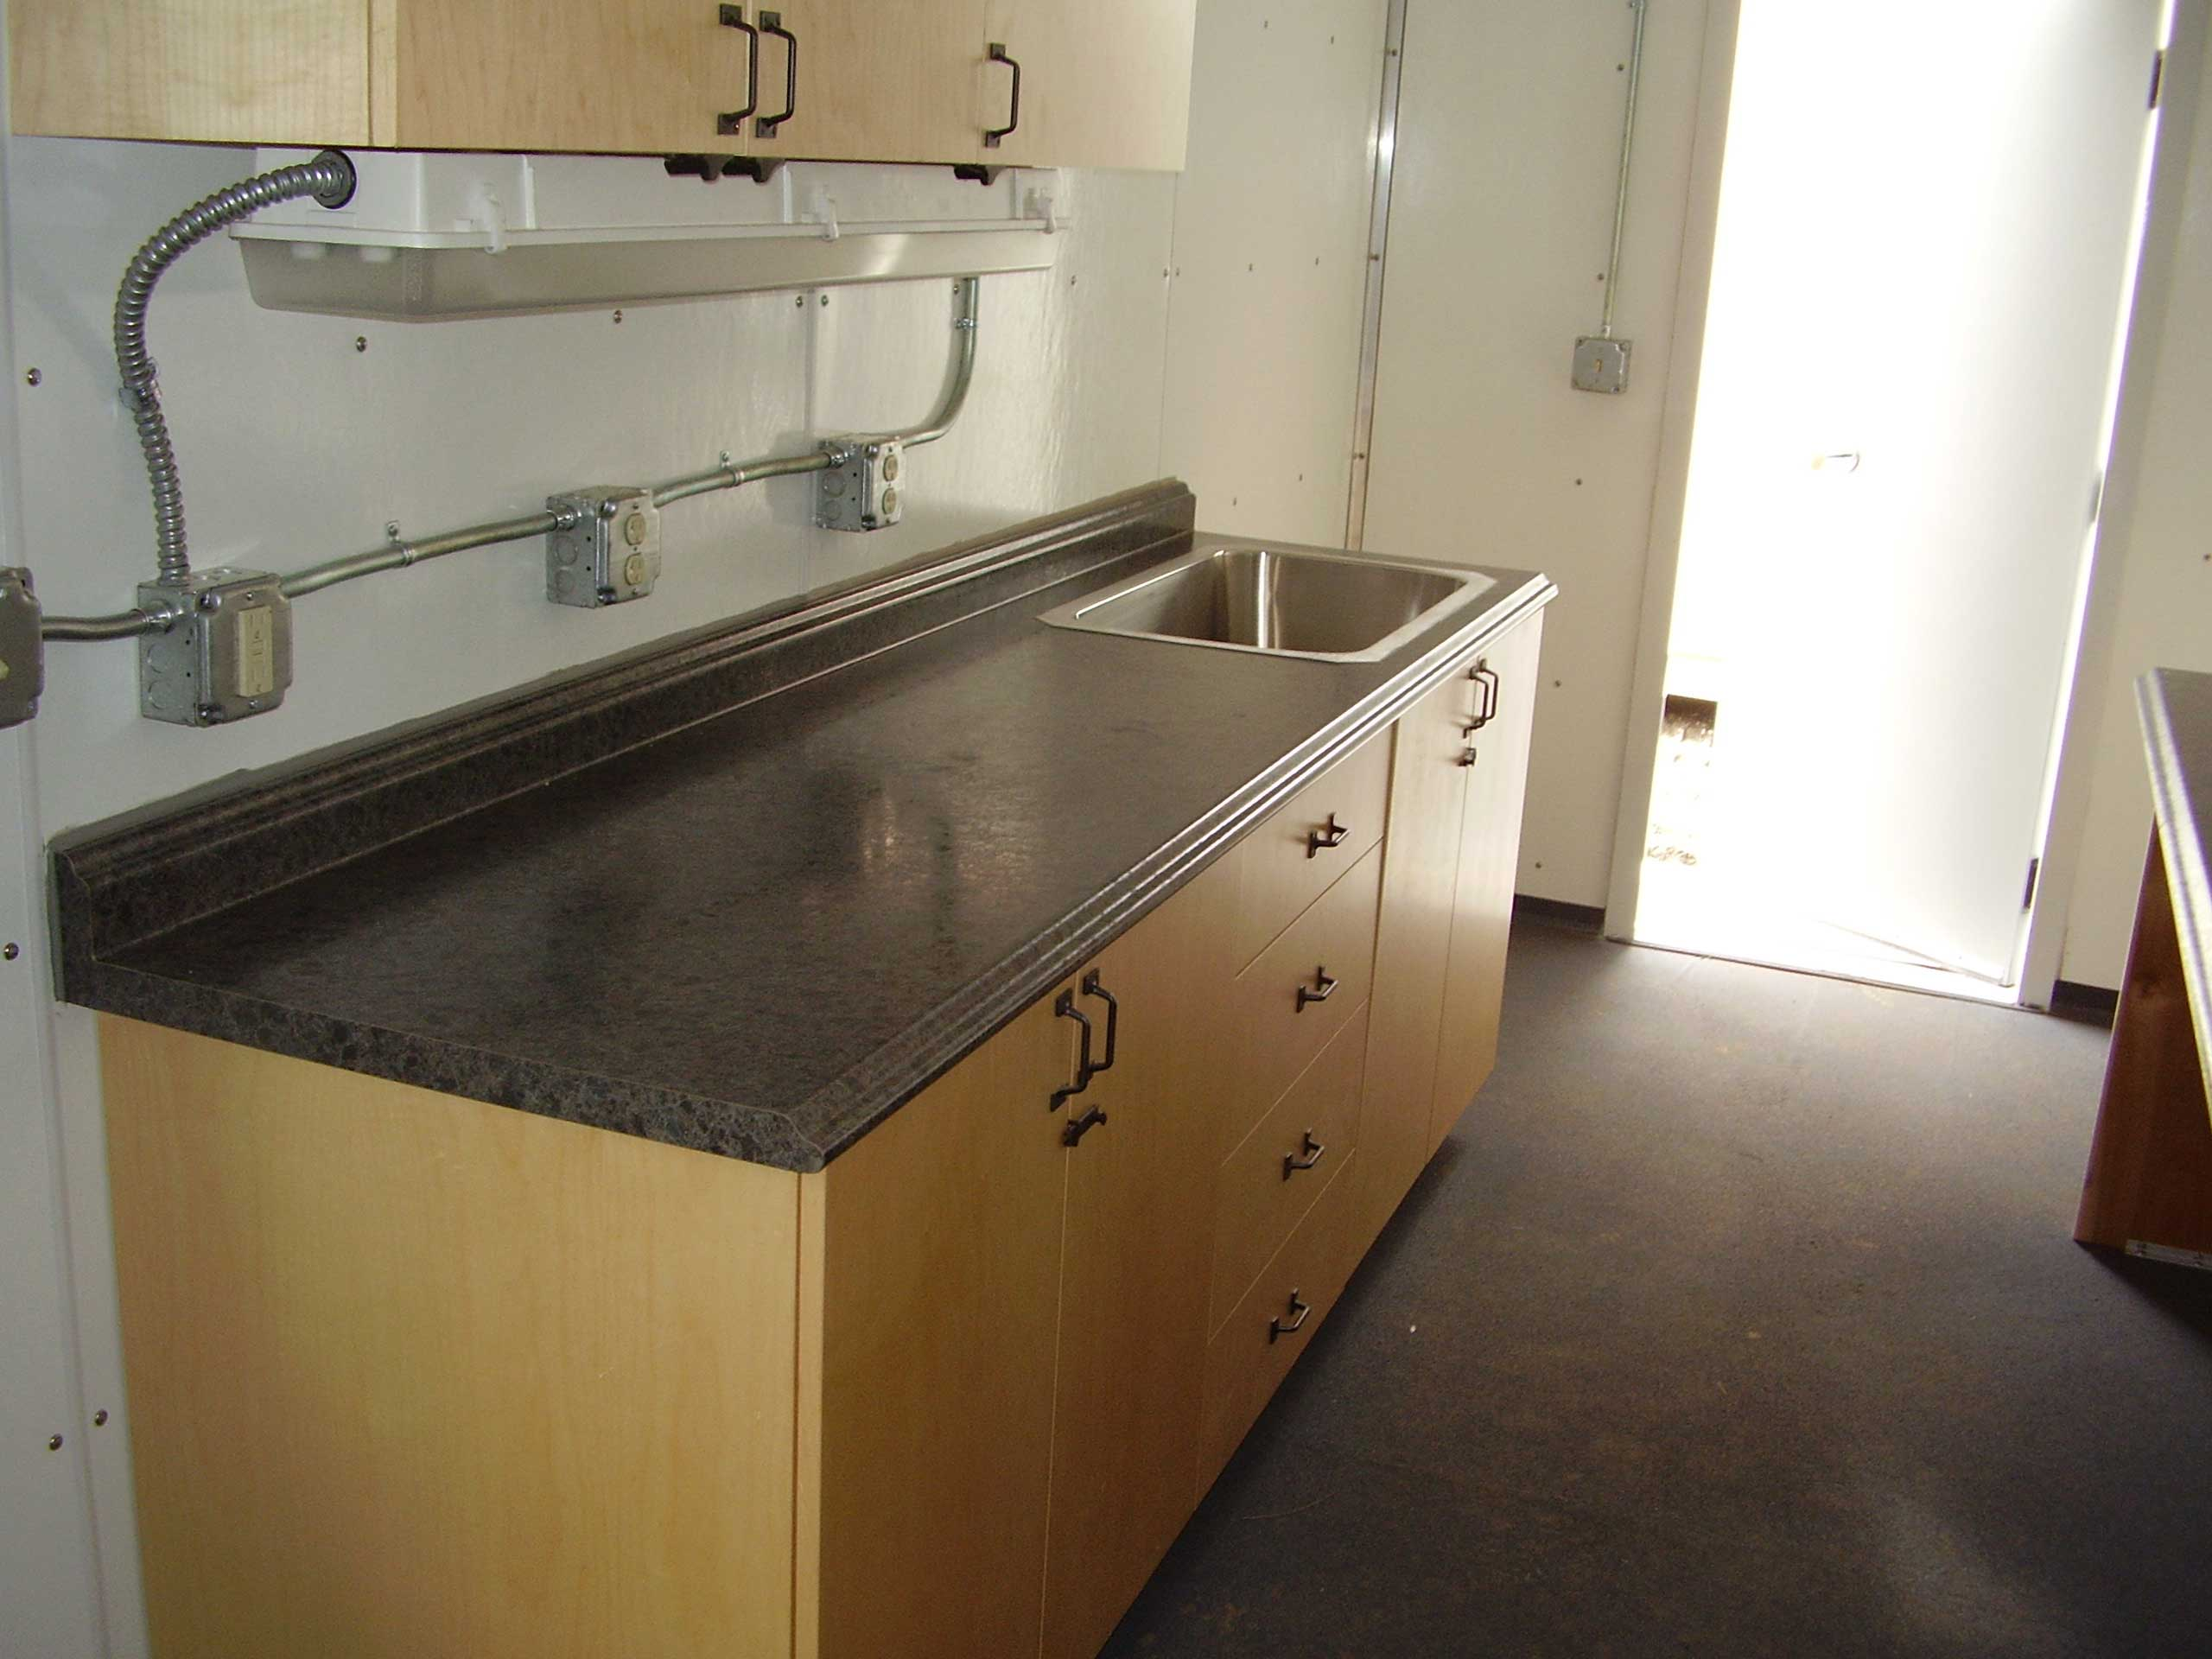 Sperry Drilling needed custom containers created to use as mud rooms in field.  Each Mud Room needed secure human-sized doors with porches for safe transit into the container.  Each container needed windows for natural lighting, easy-to-clean wall paneling, flooring, cabinets, counter tops, lighting, electrical outlets, and a sink basin to meet their custom needs.